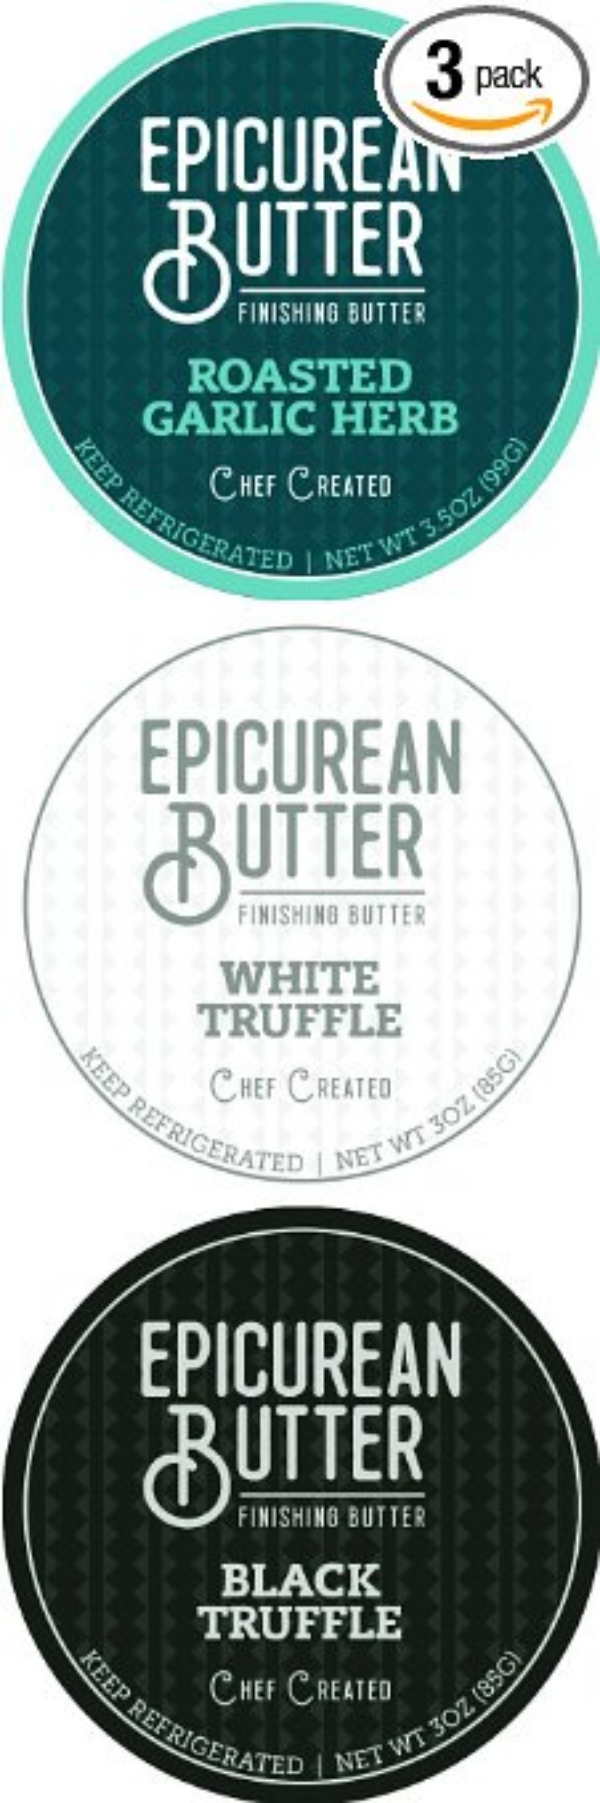 Epicurean Butter Variety Pack